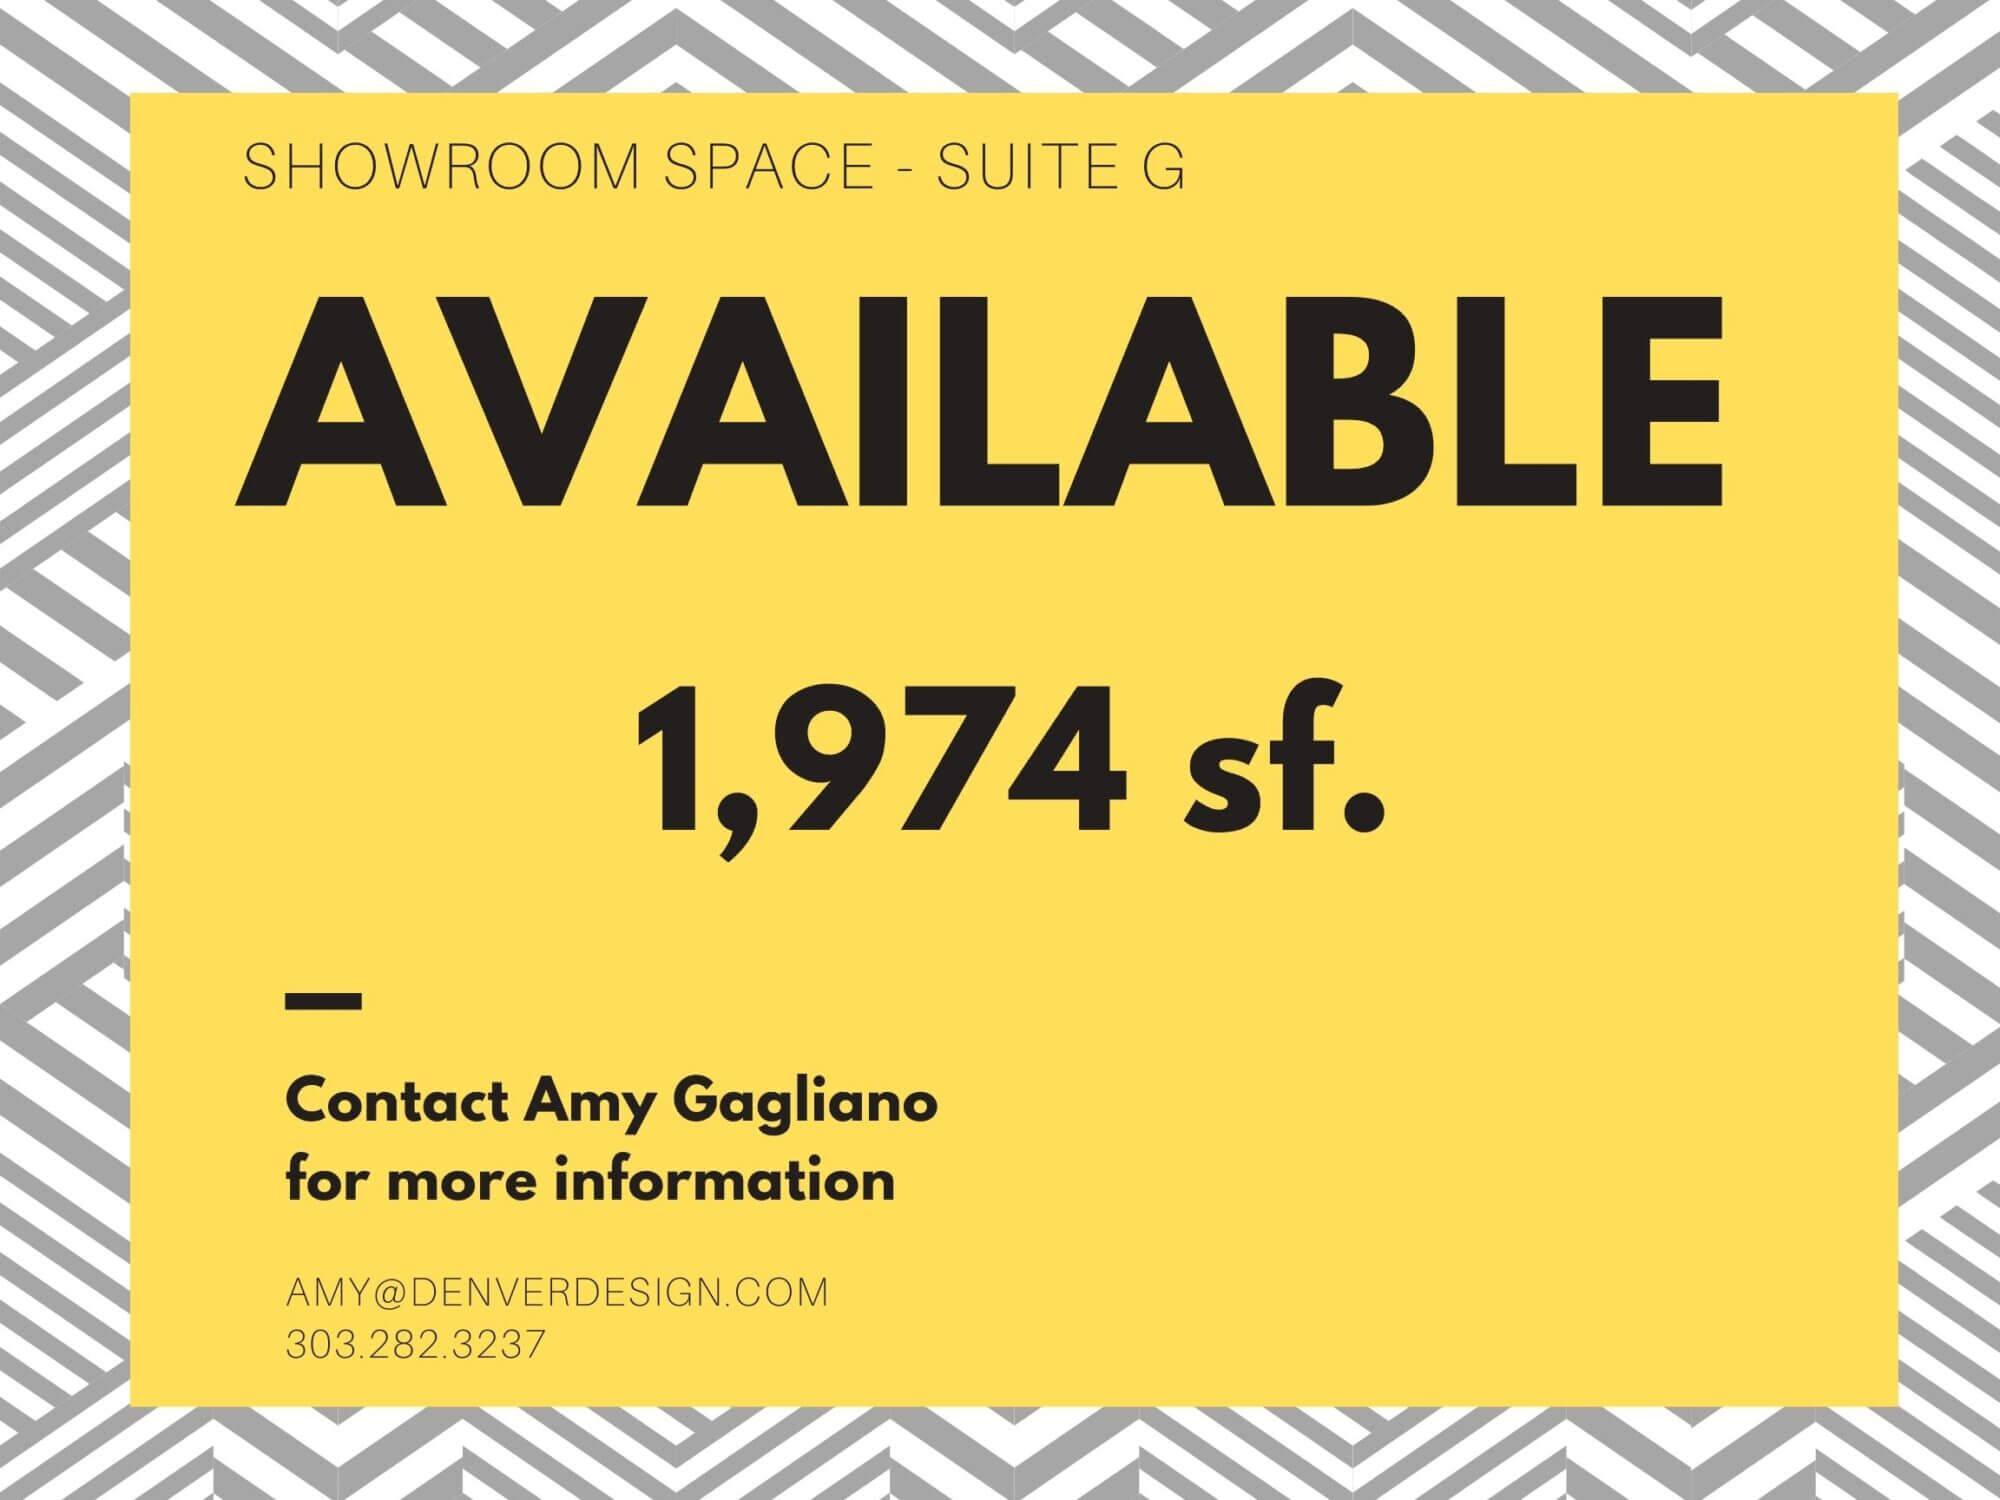 1974 available space